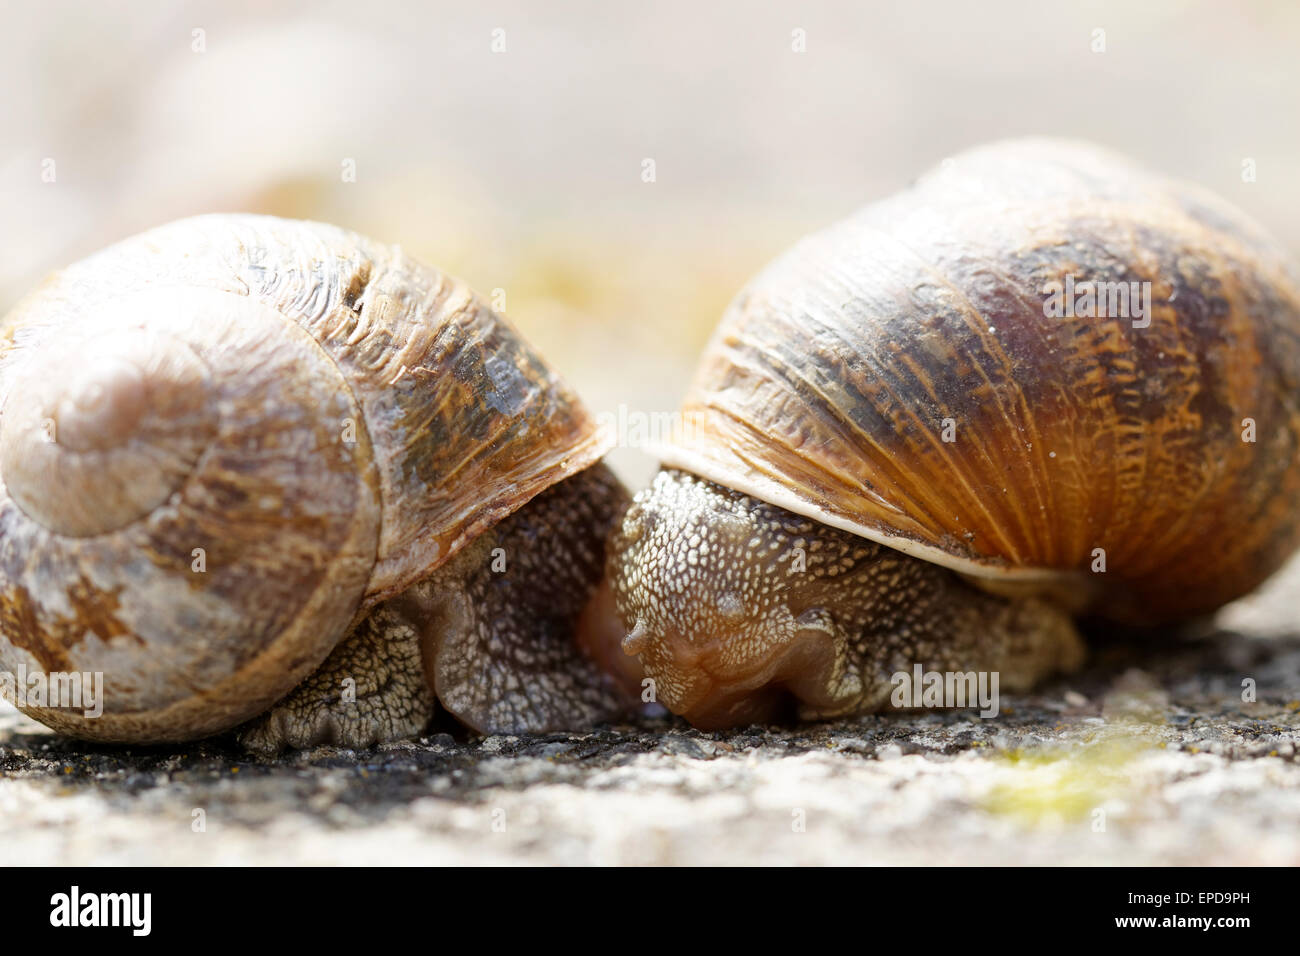 A pair of garden snails mating - Stock Image